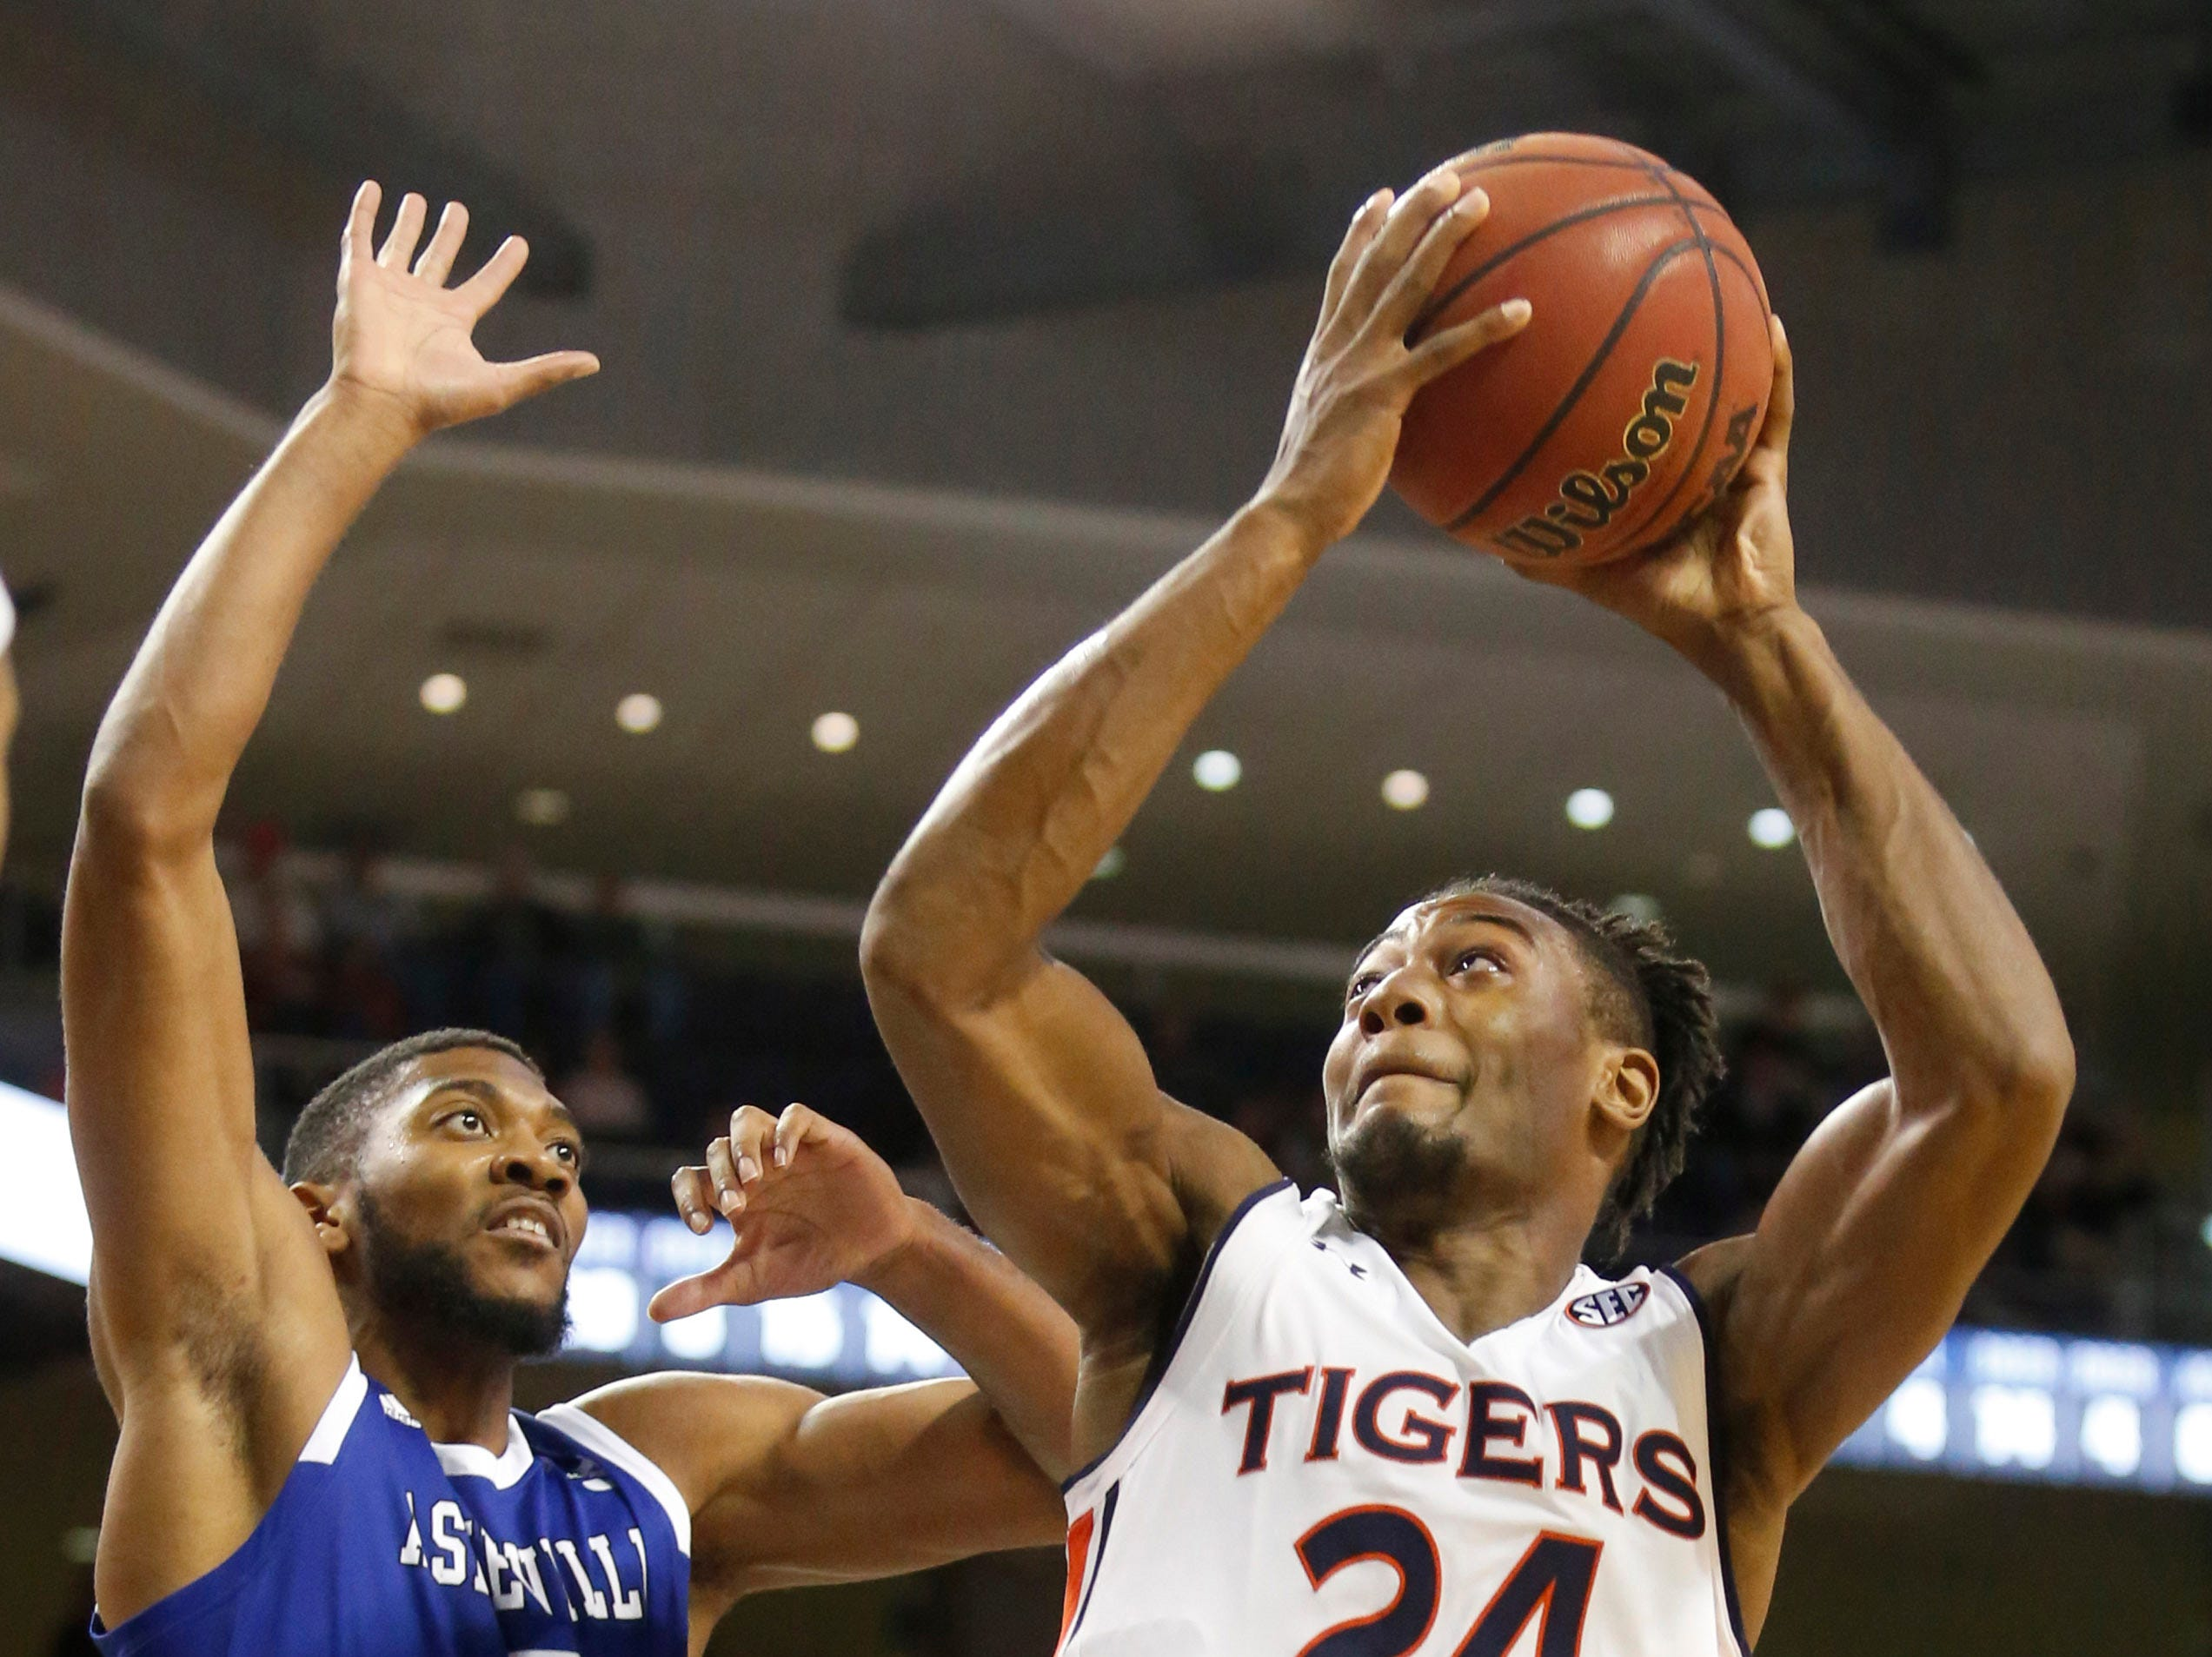 Dec 4, 2018; Auburn, AL, USA; Auburn Tigers forward Anfernee McLemore (24) takes a shot against UNC-Asheville Bulldogs forward Donovan Gilmore (0) during the second half at Auburn Arena. Mandatory Credit: John Reed-USA TODAY Sports